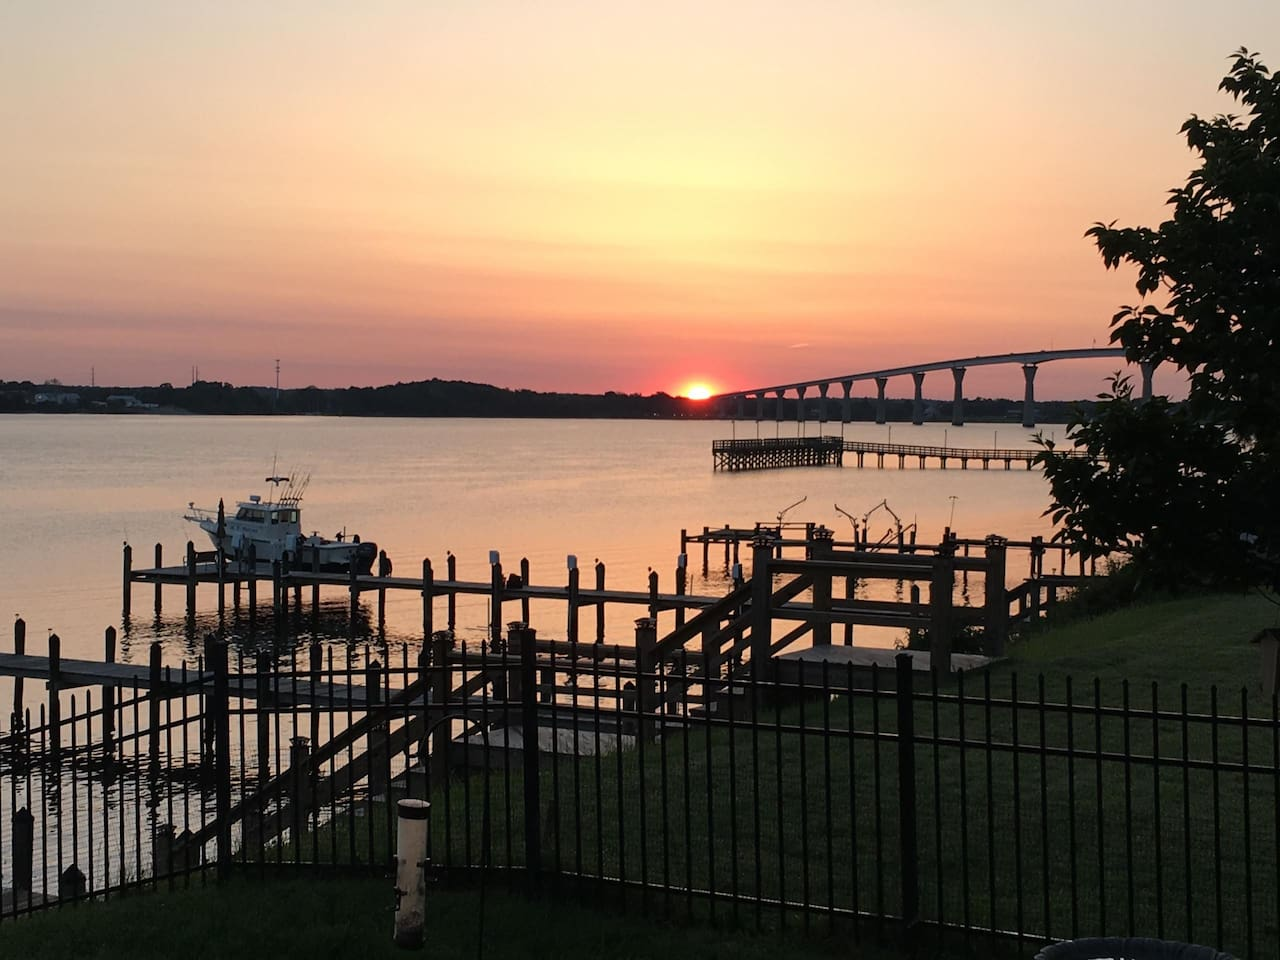 Sunrise on the Patuxent River - a beautiful start to every day